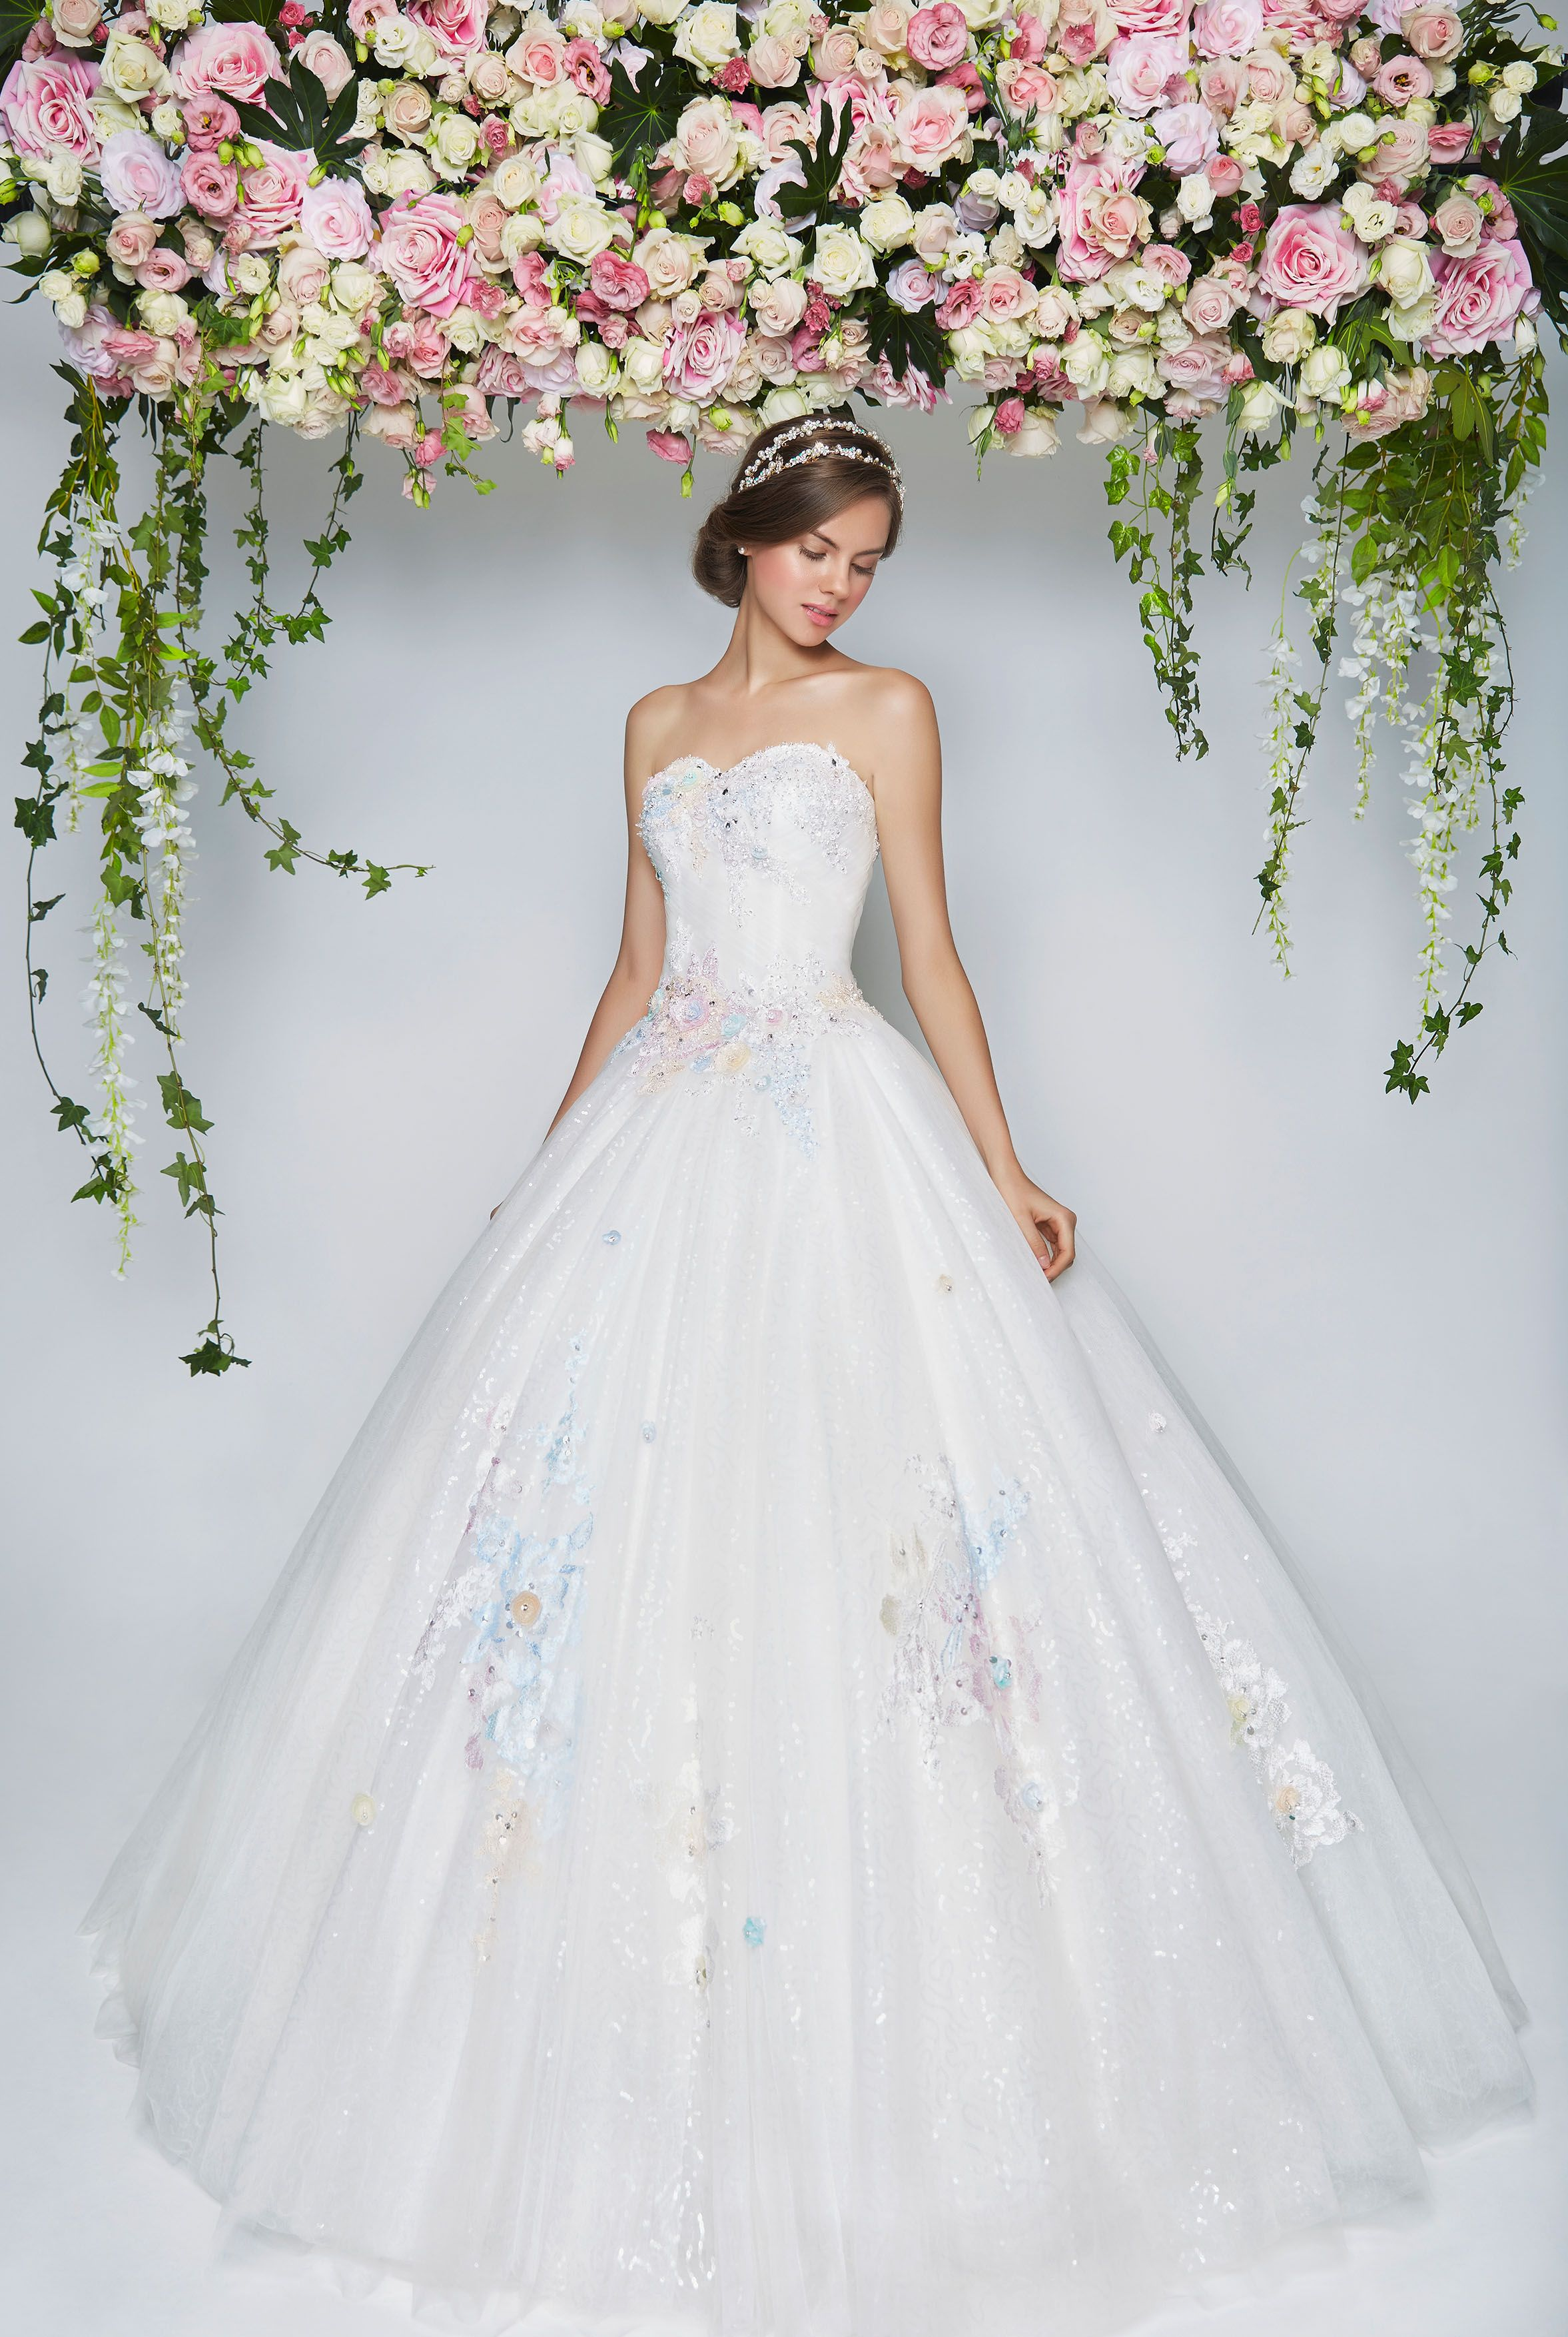 Blooming romantic pretty in floral floral wedding dresses bridal